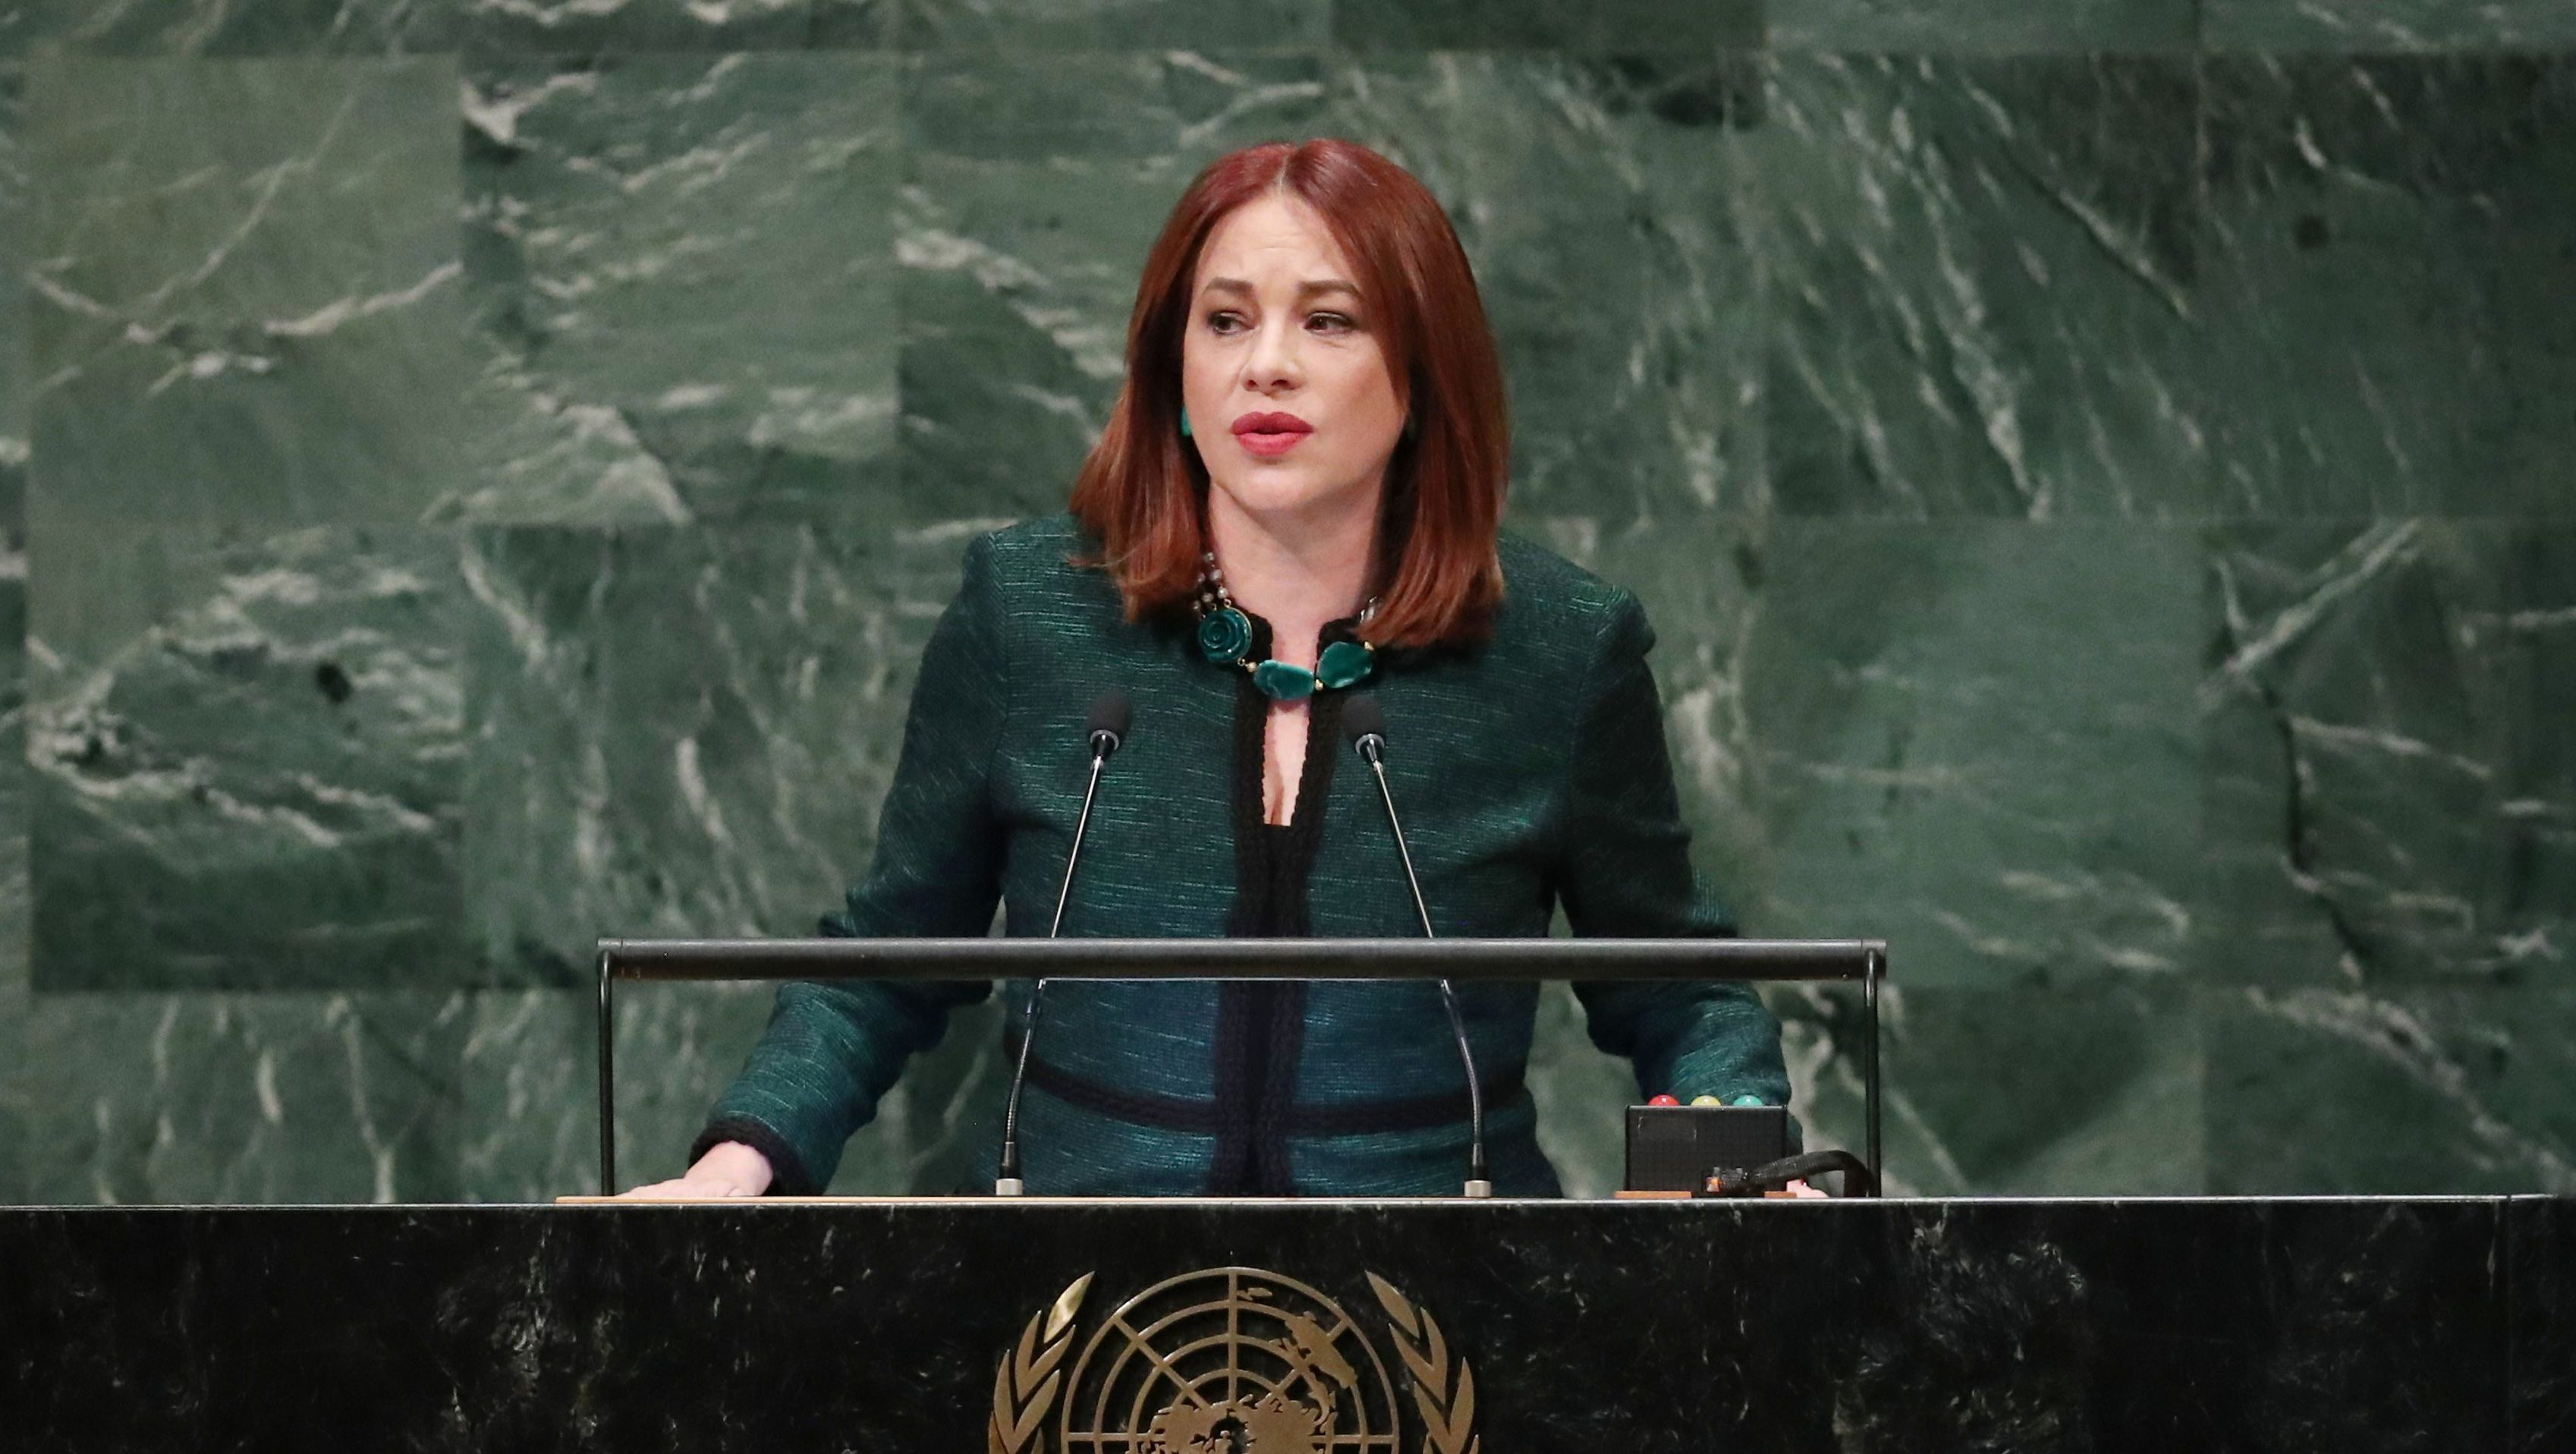 United Nations General Assembly President Maria Fernanda Espinosa Garces addresses the 73rd session of the United Nations General Assembly at U.N. headquarters in New York, U.S., September 25, 2018.